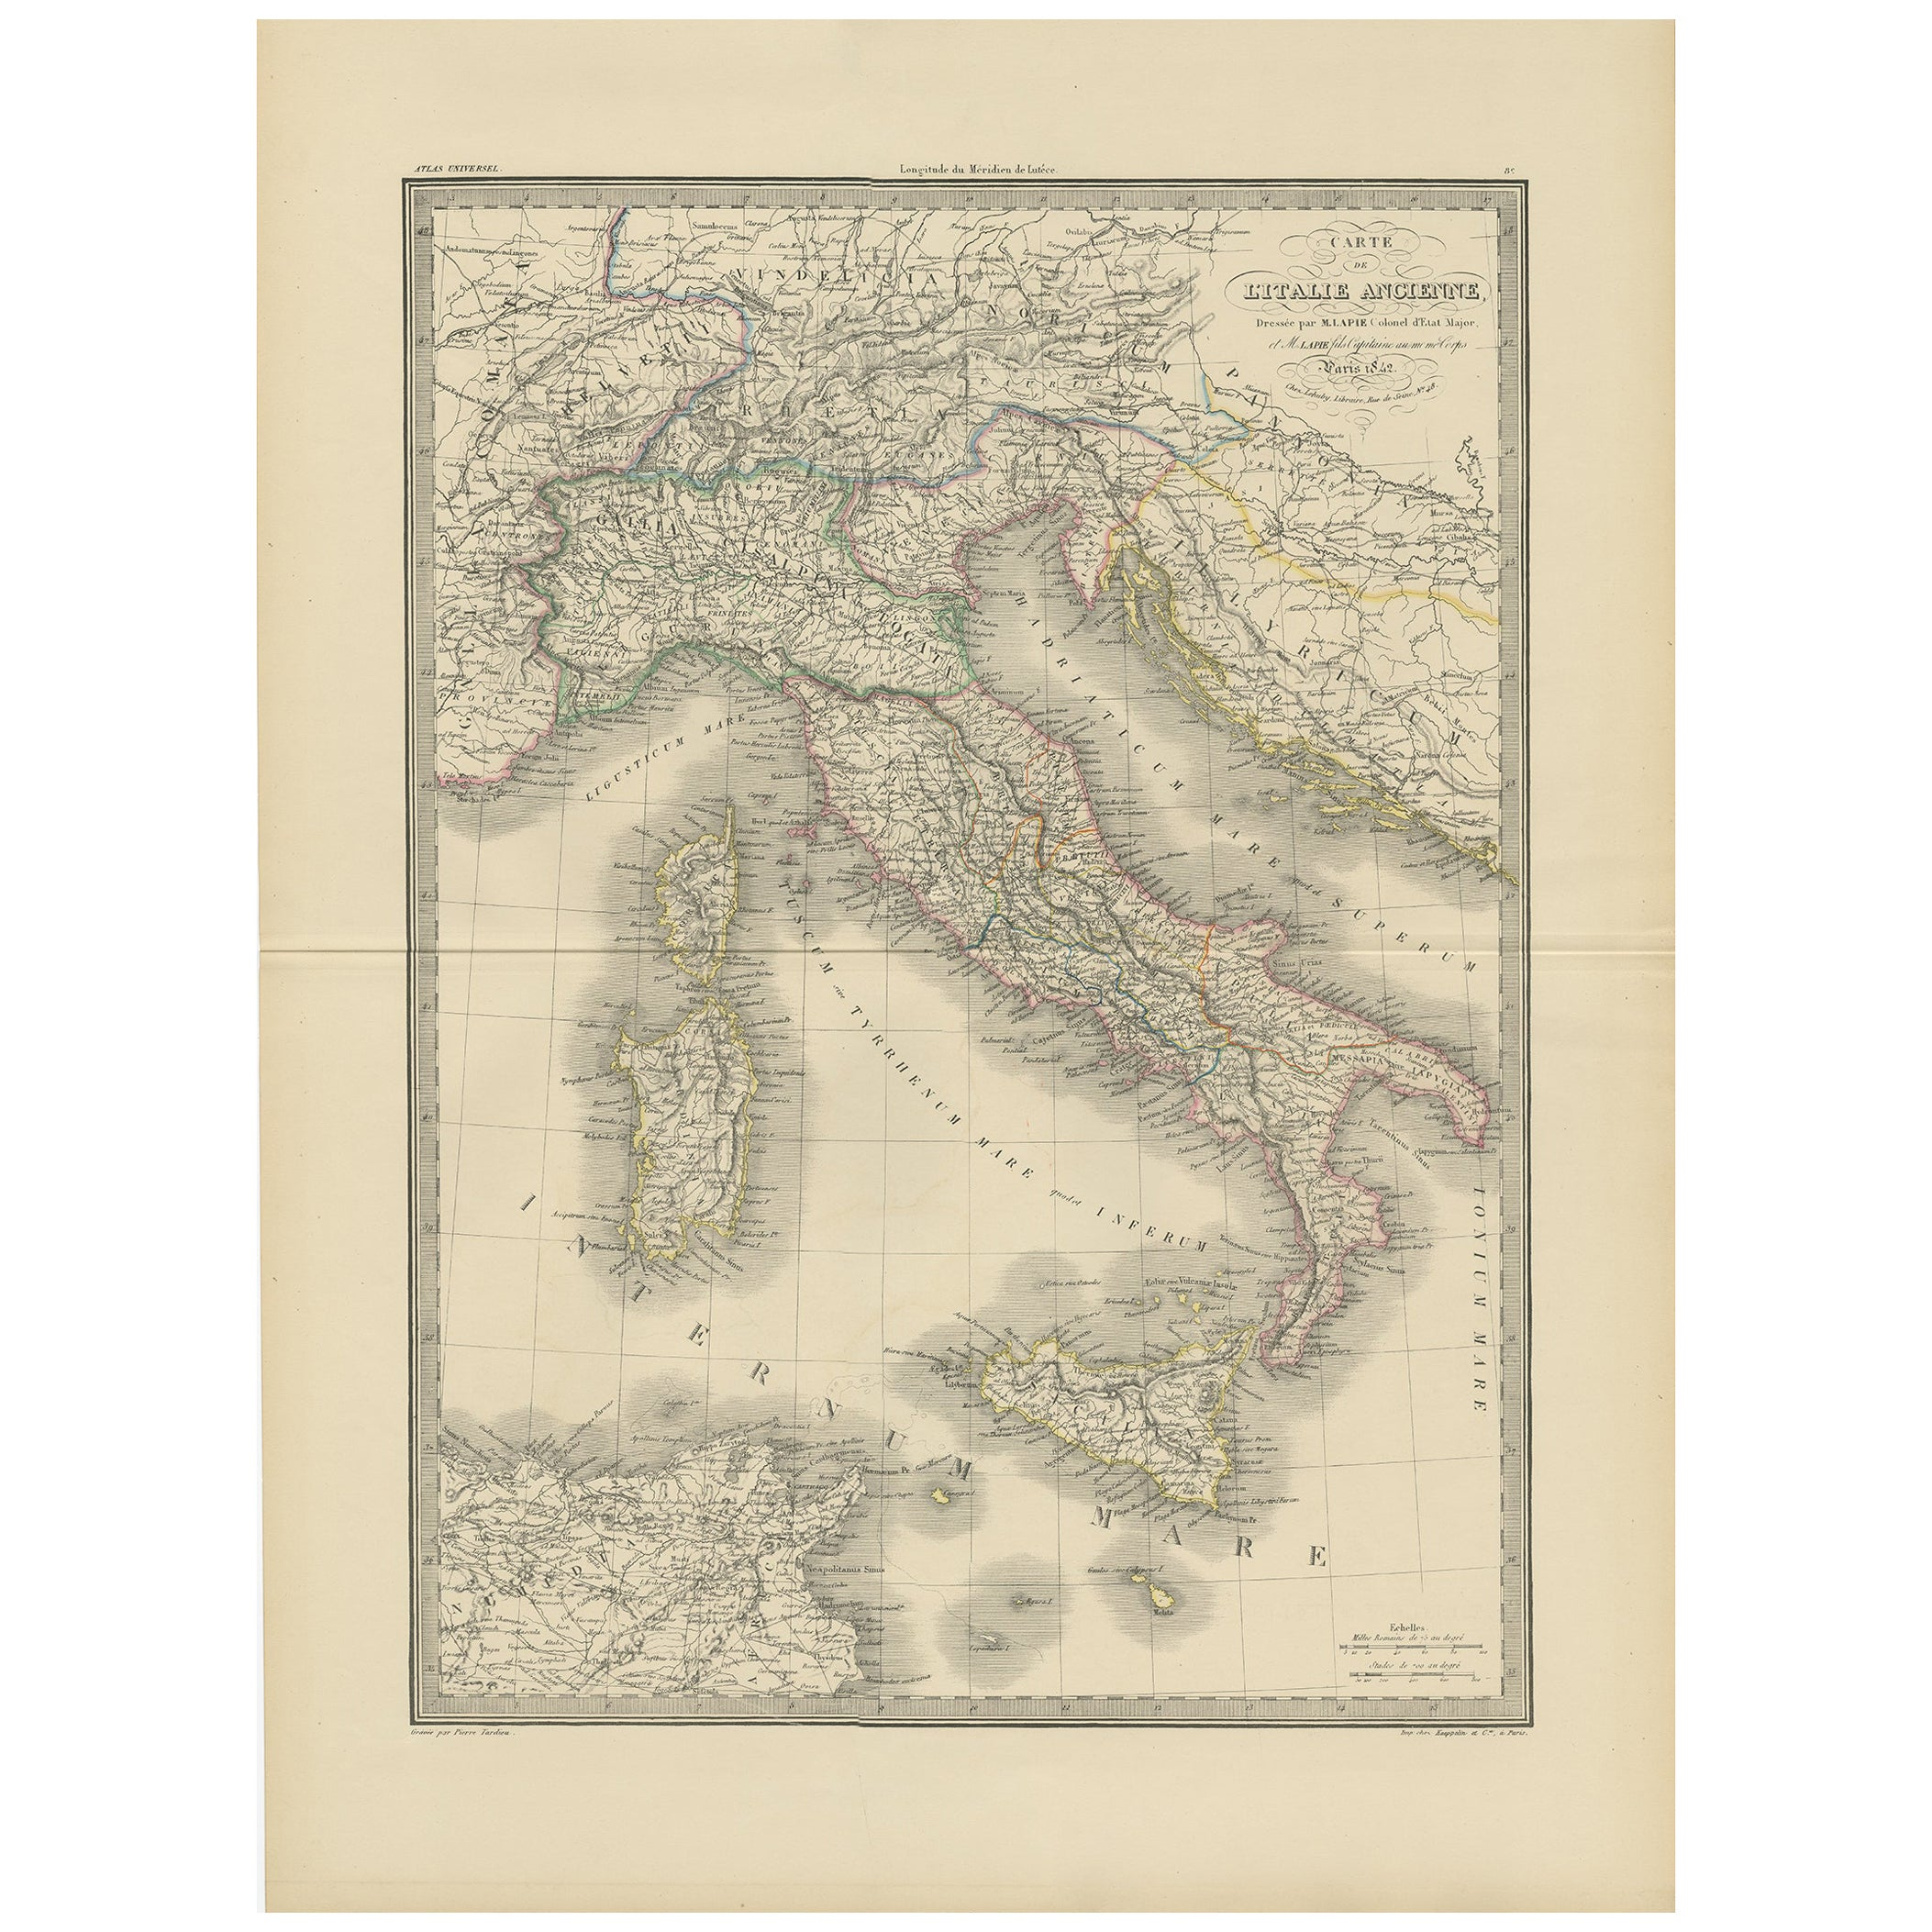 Antique Map of Italy by Lapie, 1842